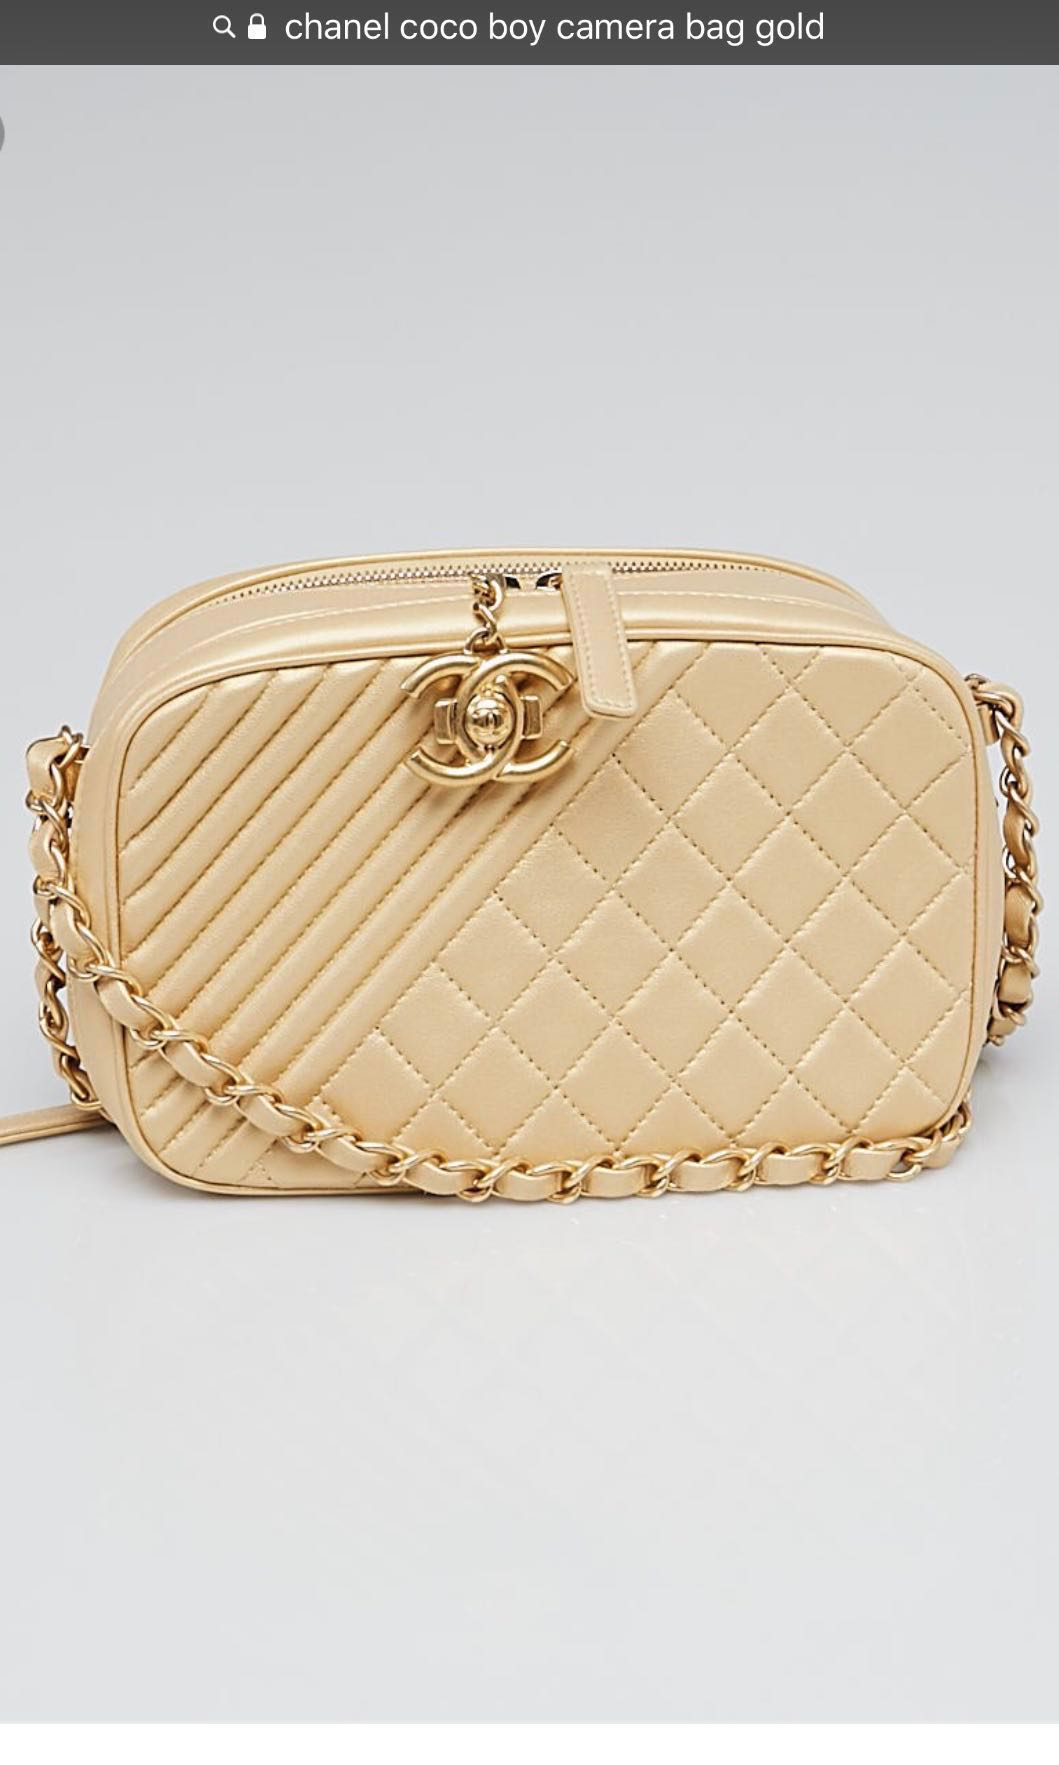 bbd6712702ba Chanel Coco Boy Small Camera Bag, Luxury, Bags & Wallets, Handbags on  Carousell